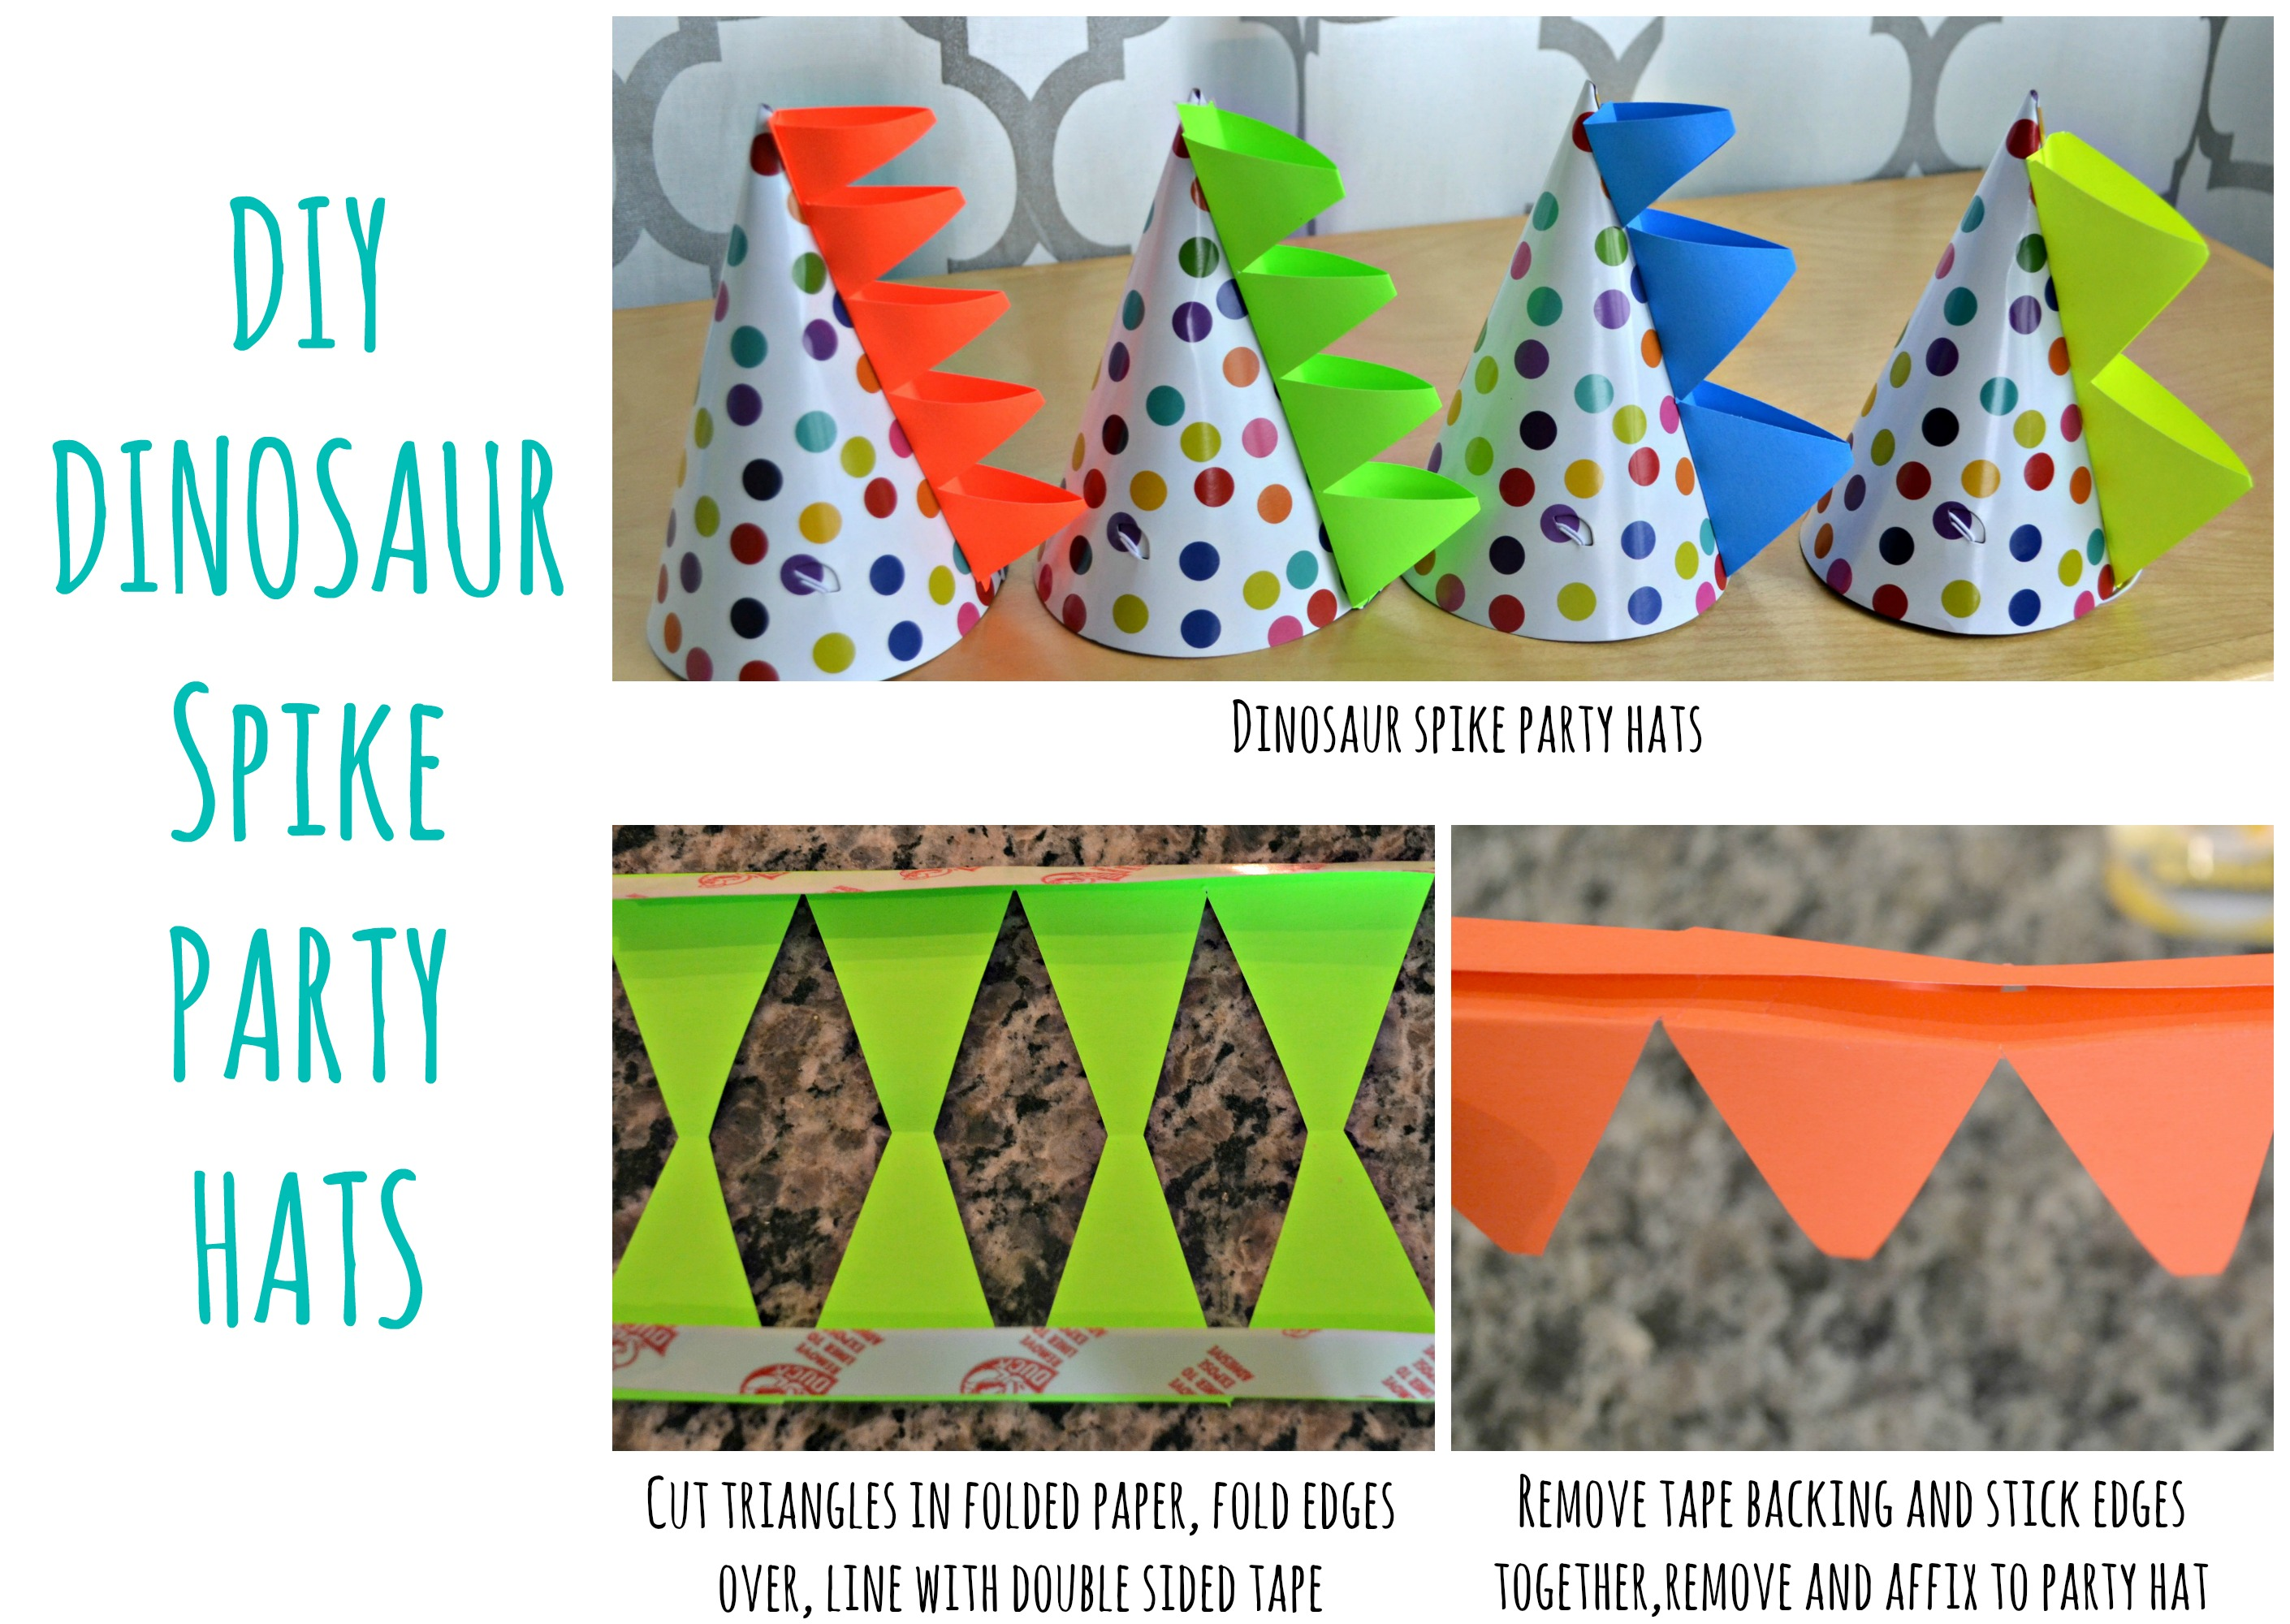 Diy Dinosaur Tails Dinosaur Spike Party Hats And Favors